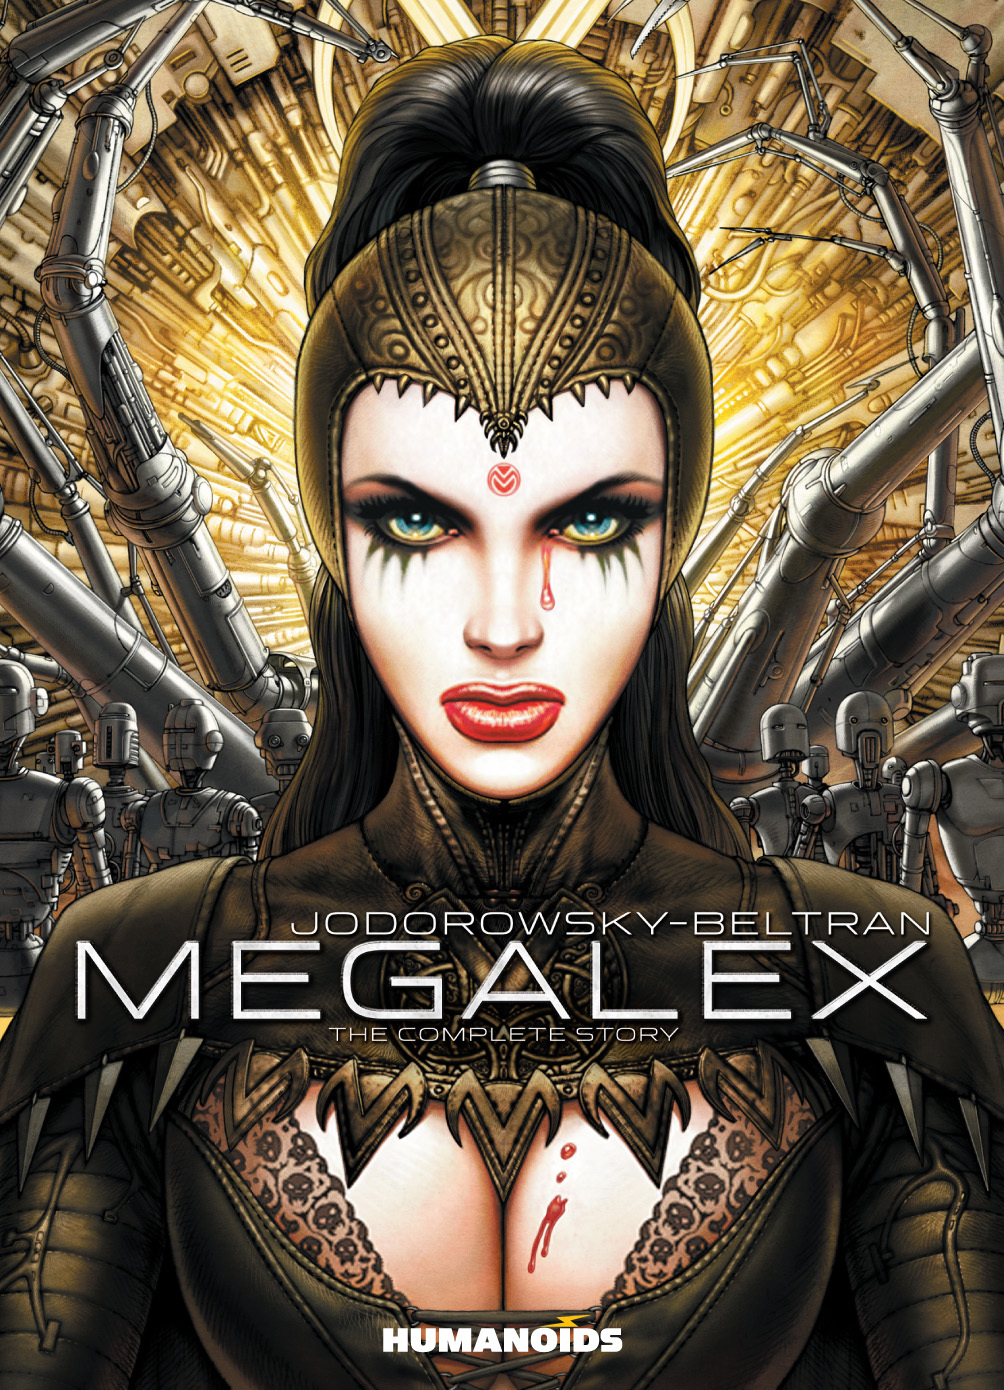 Megalex - Hardcover Trade : The Complete Story